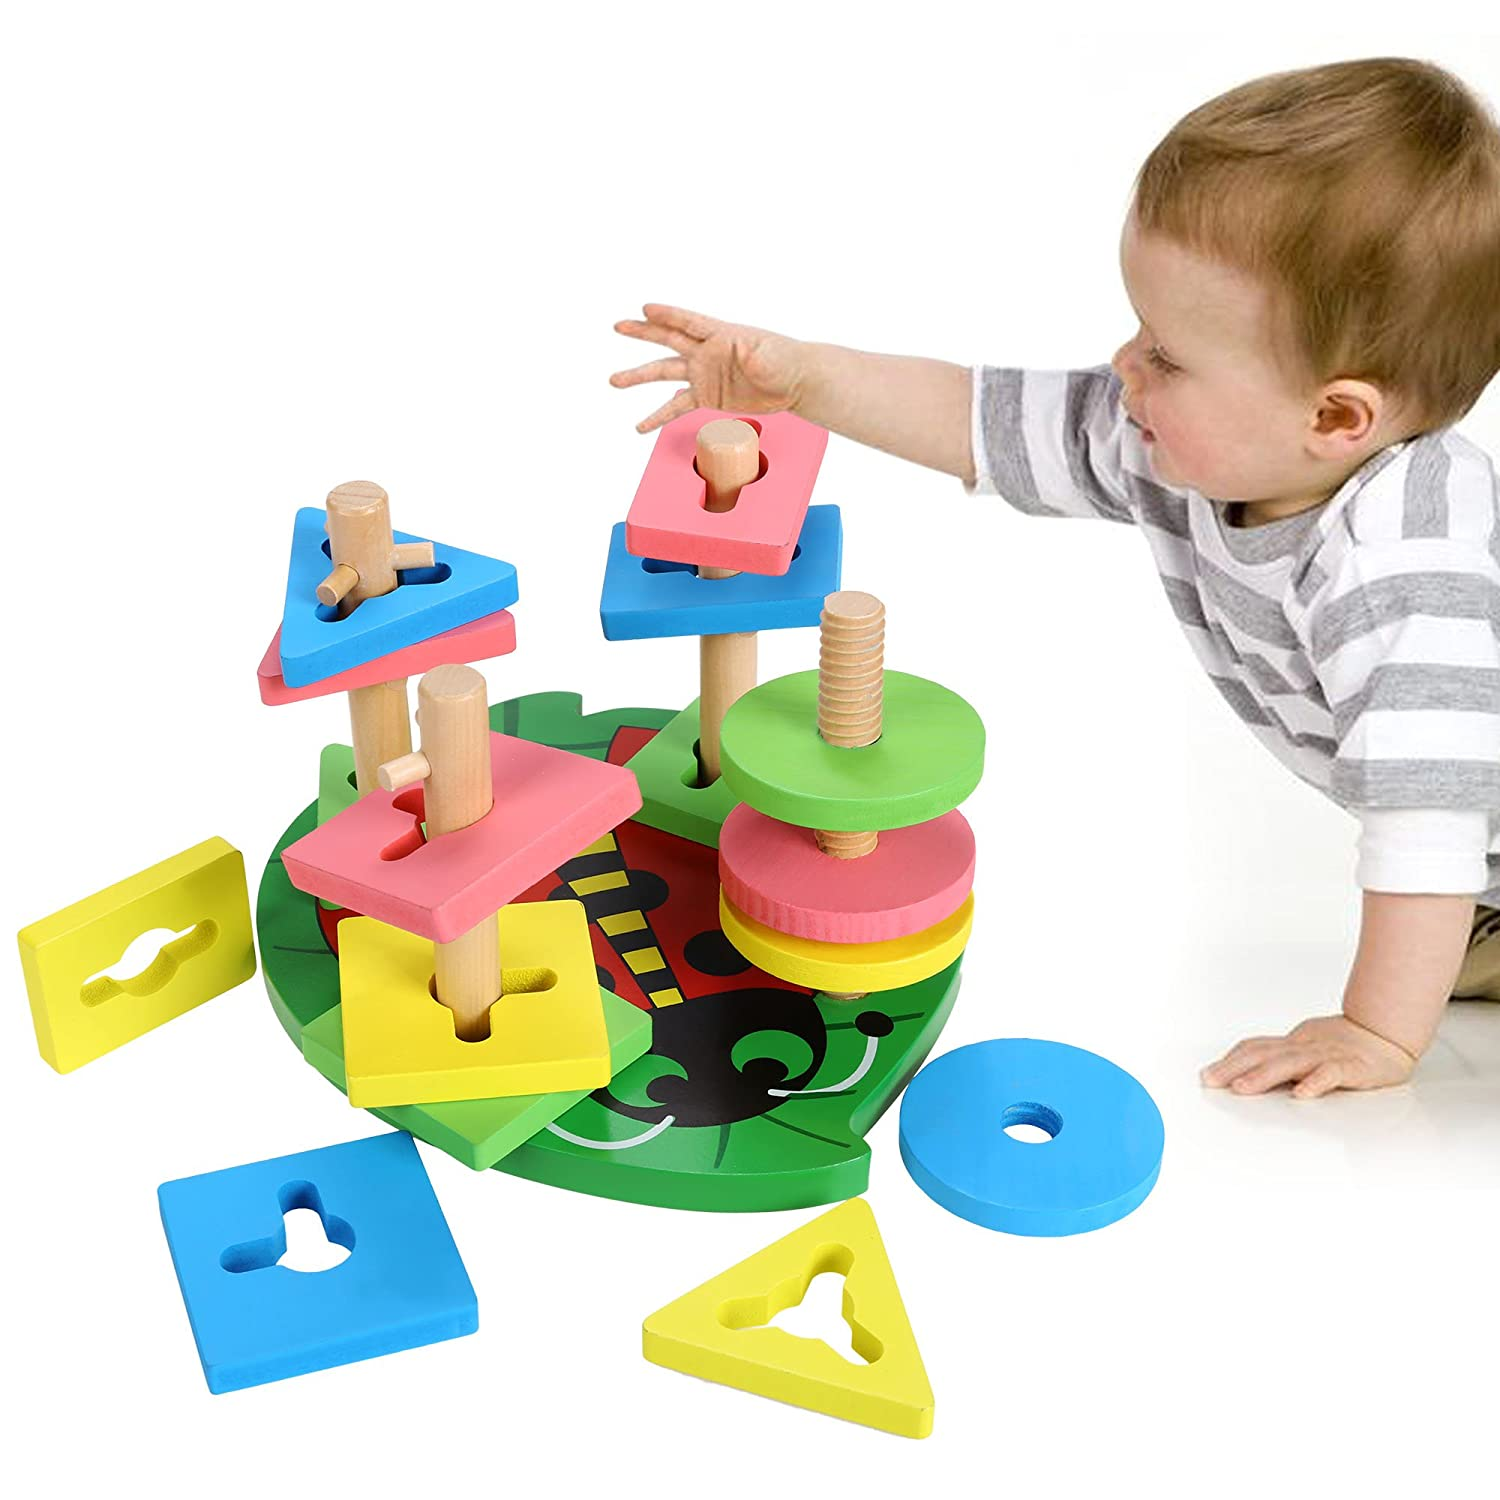 Arshiner Stacking Wooden Sorter Toys Wooden Geometric Shaped And